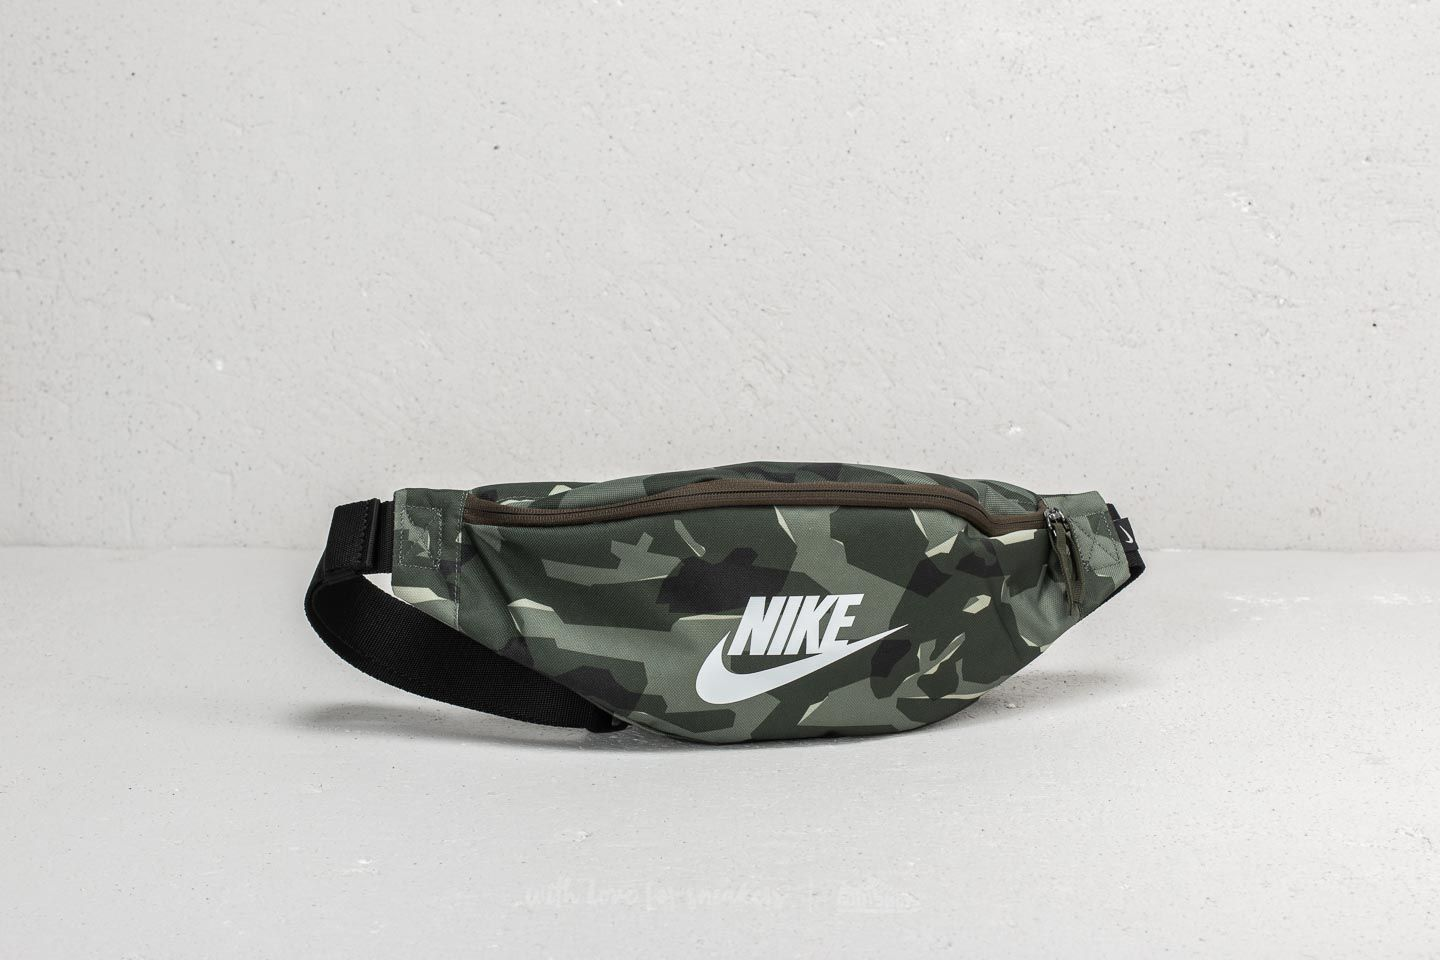 486d7557df Nike Heritage Hip Pack Cargo Khaki  Black  White